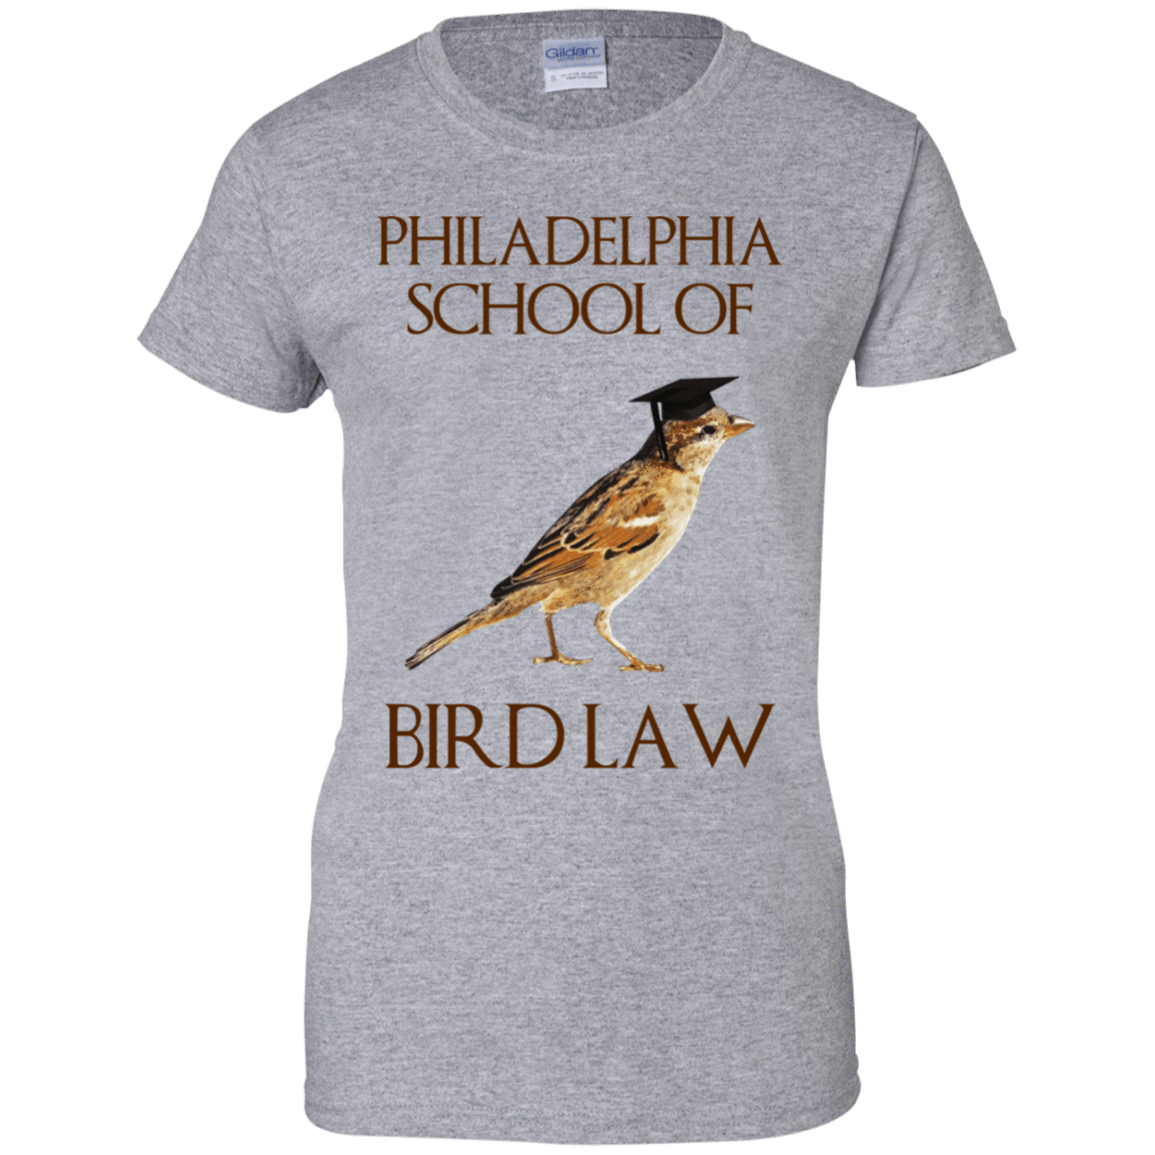 Philadelphia School of Bird Law 939-9265-73057596-44821 - Tee Ript